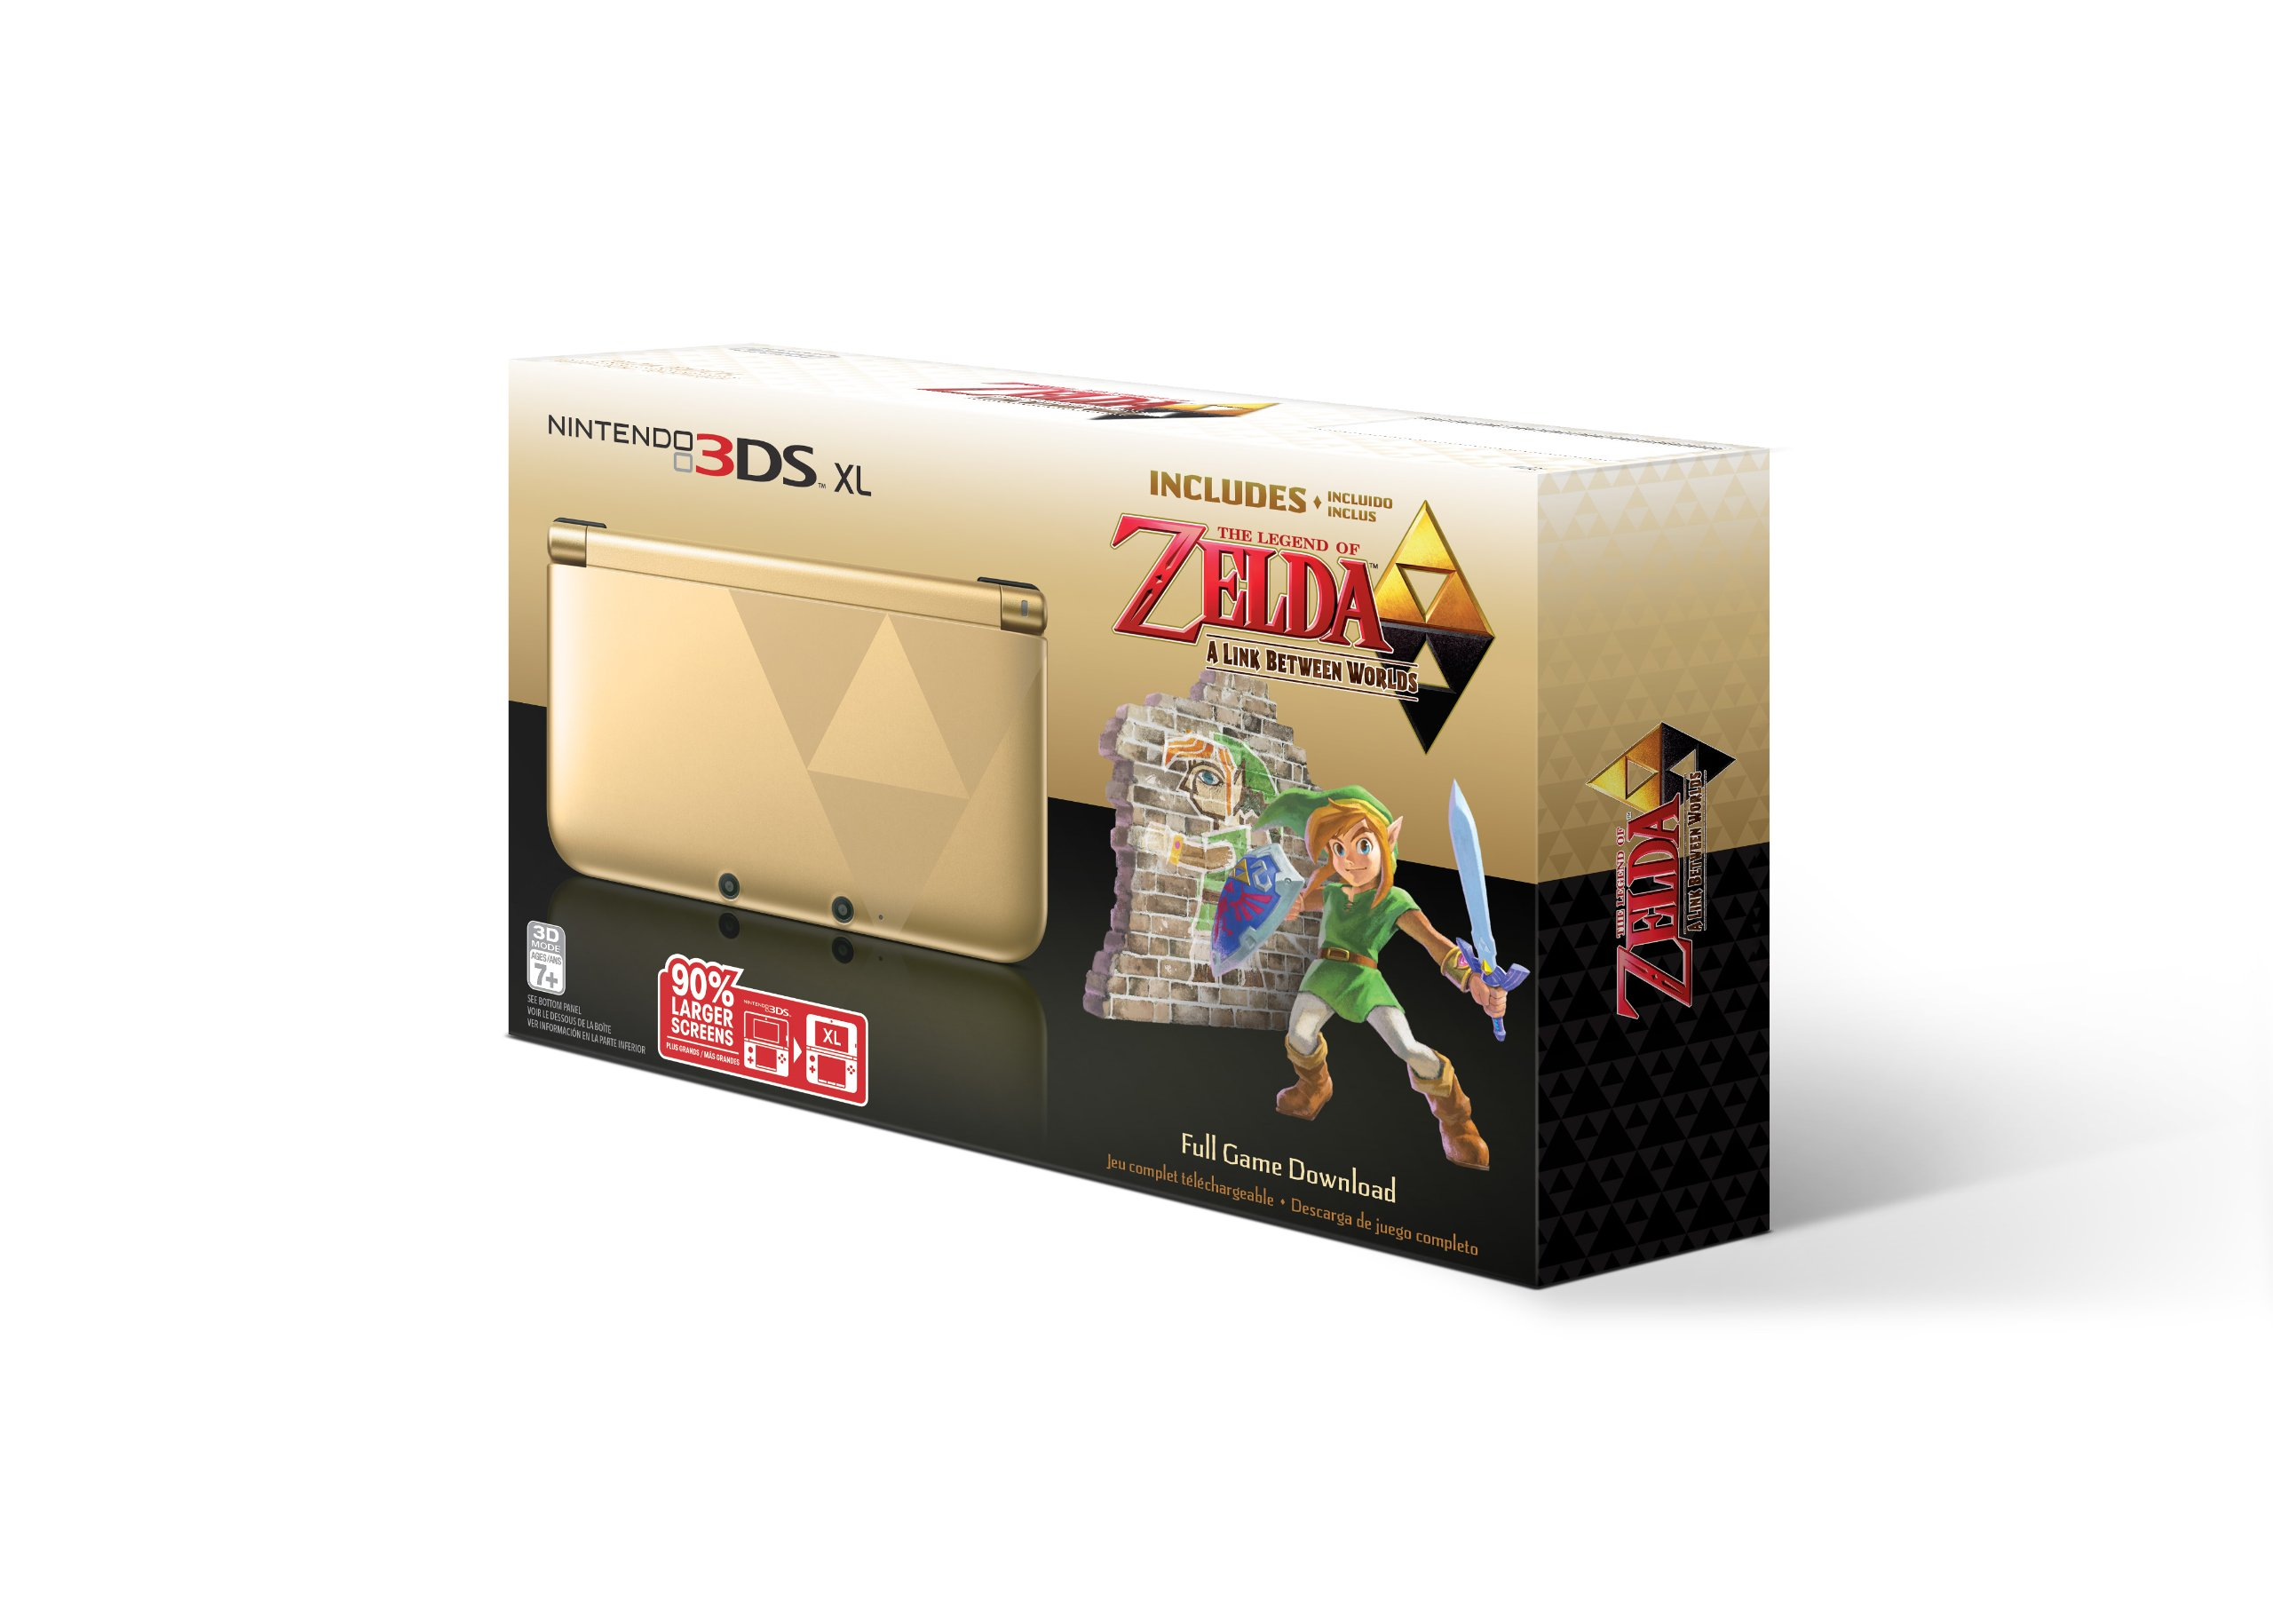 Nintendo 3DS XL Gold/Black - Limited Edition Bundle with The Legend of Zelda: A Link Between Worlds by Nintendo